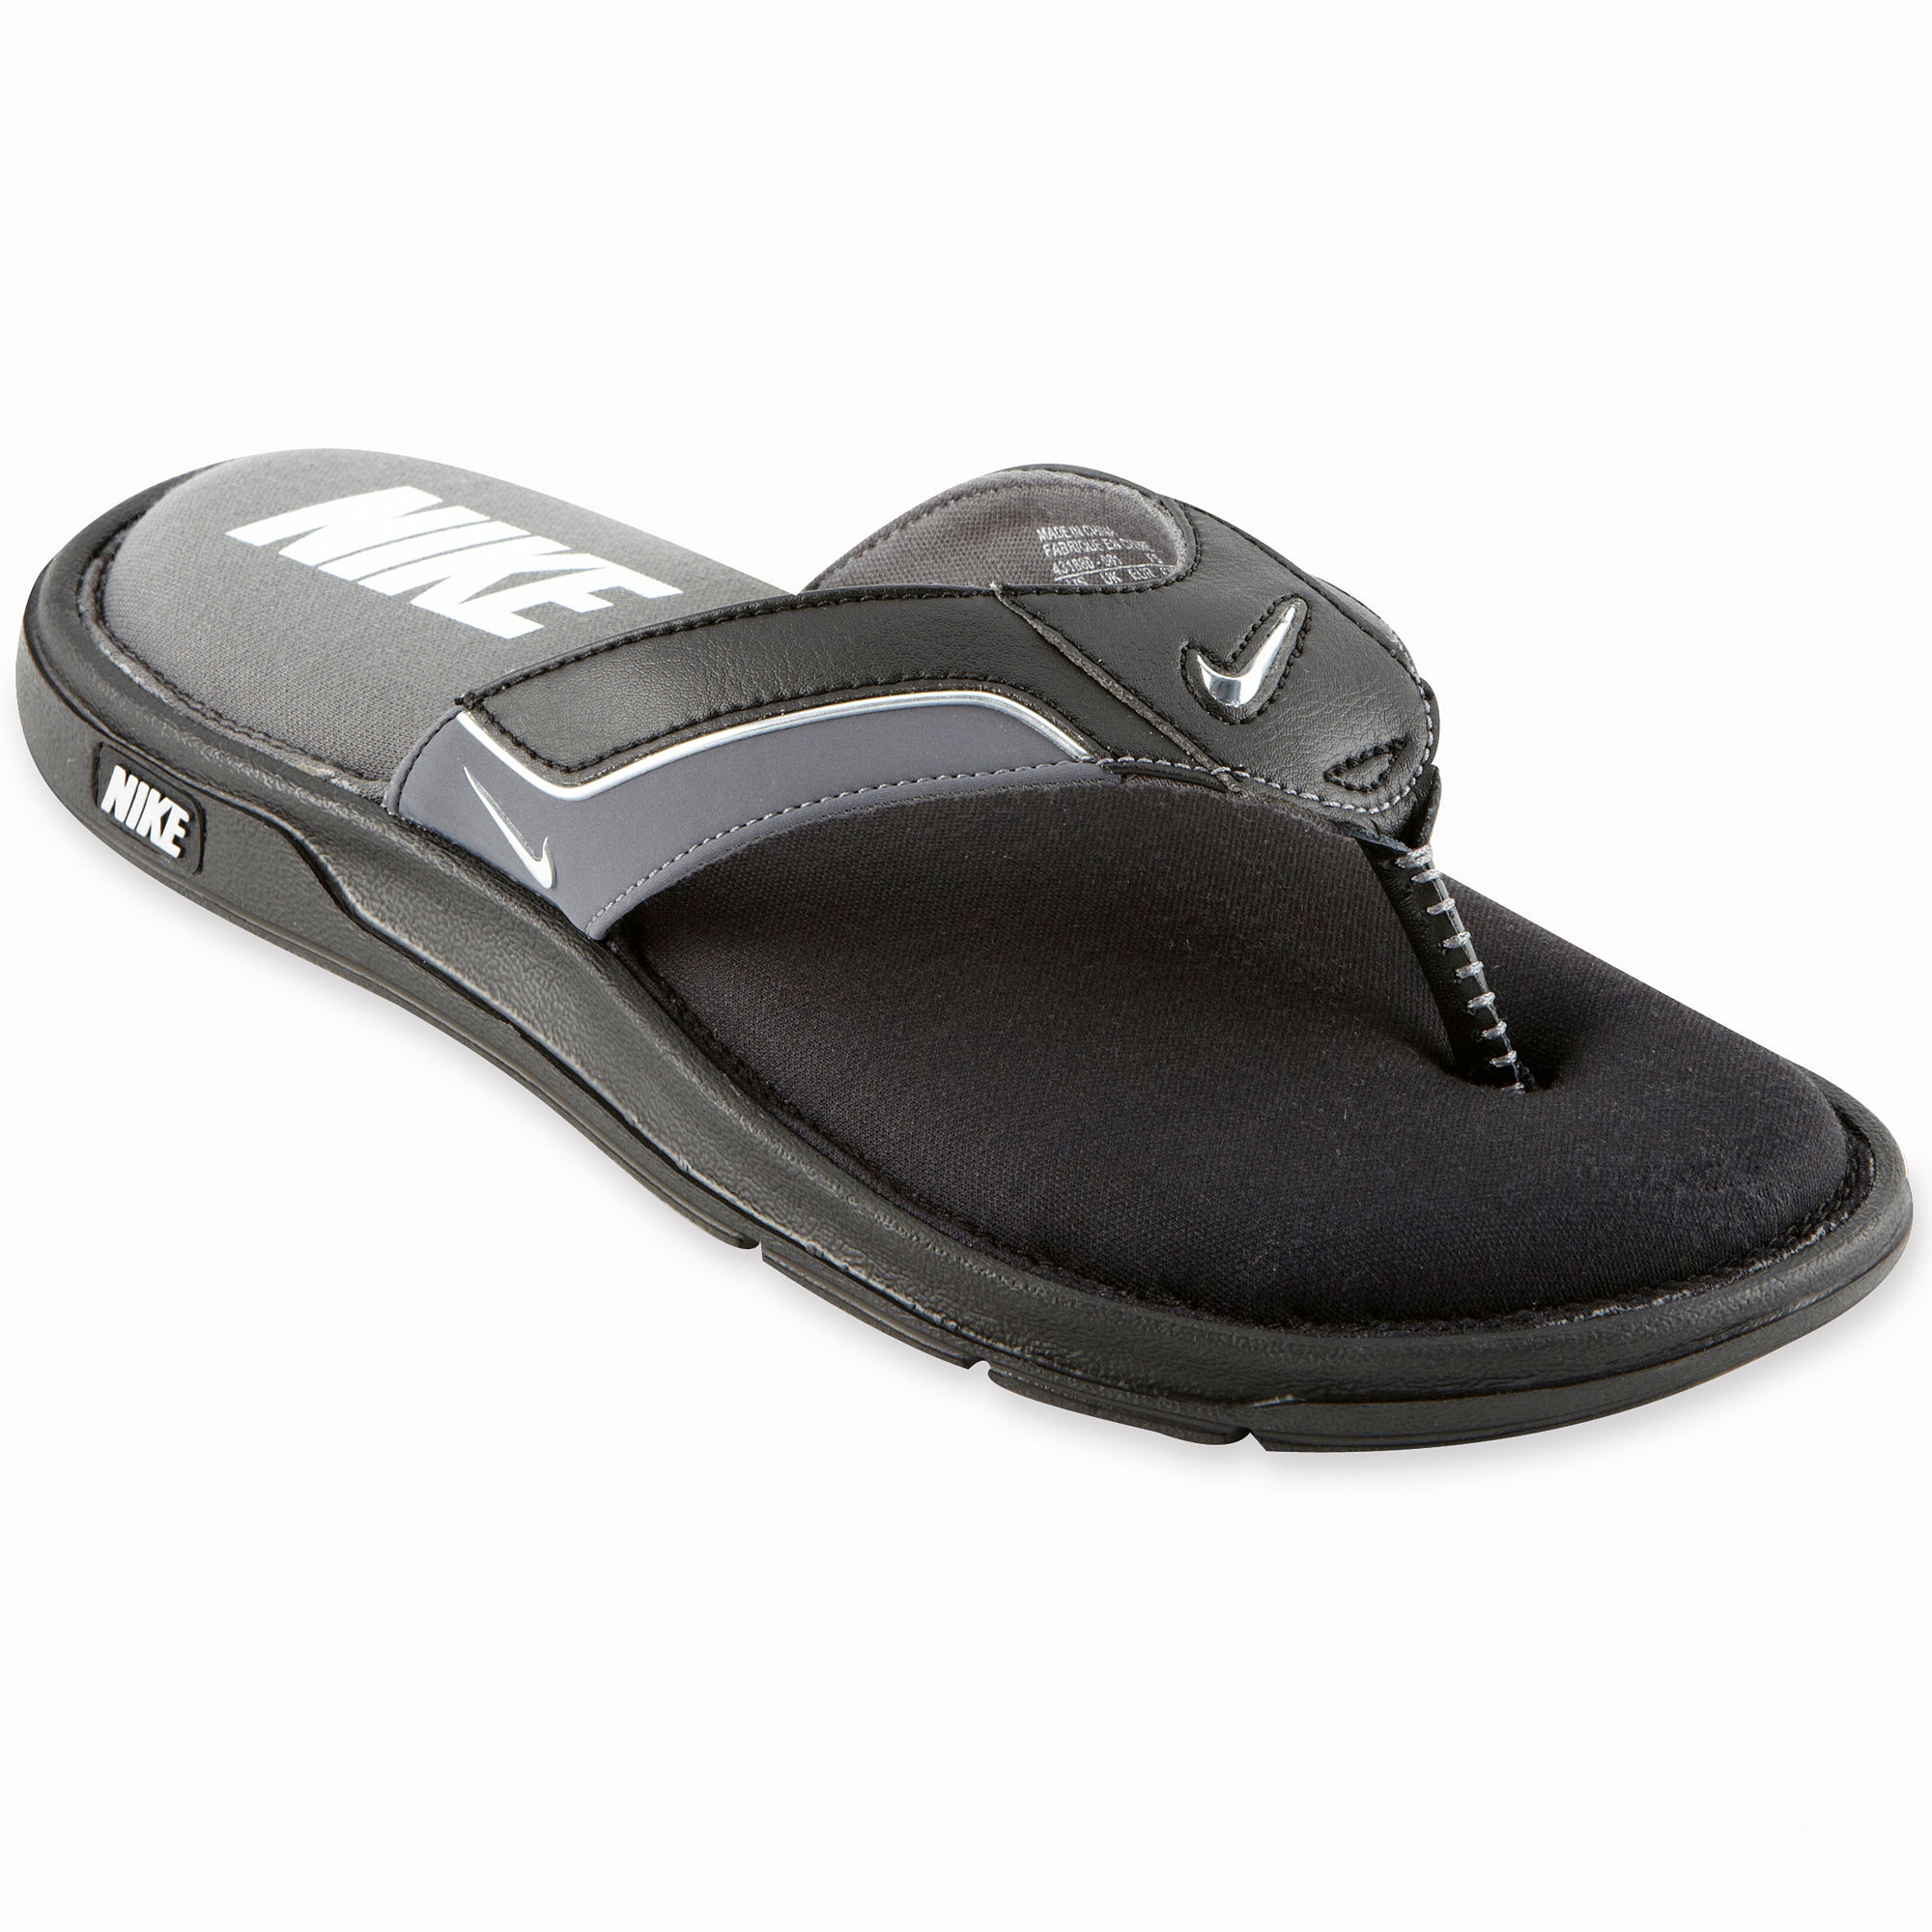 beach sandal eva men of comfort flip nike swiss sole alpine sandals p picture comforter flops thongs m thong blk